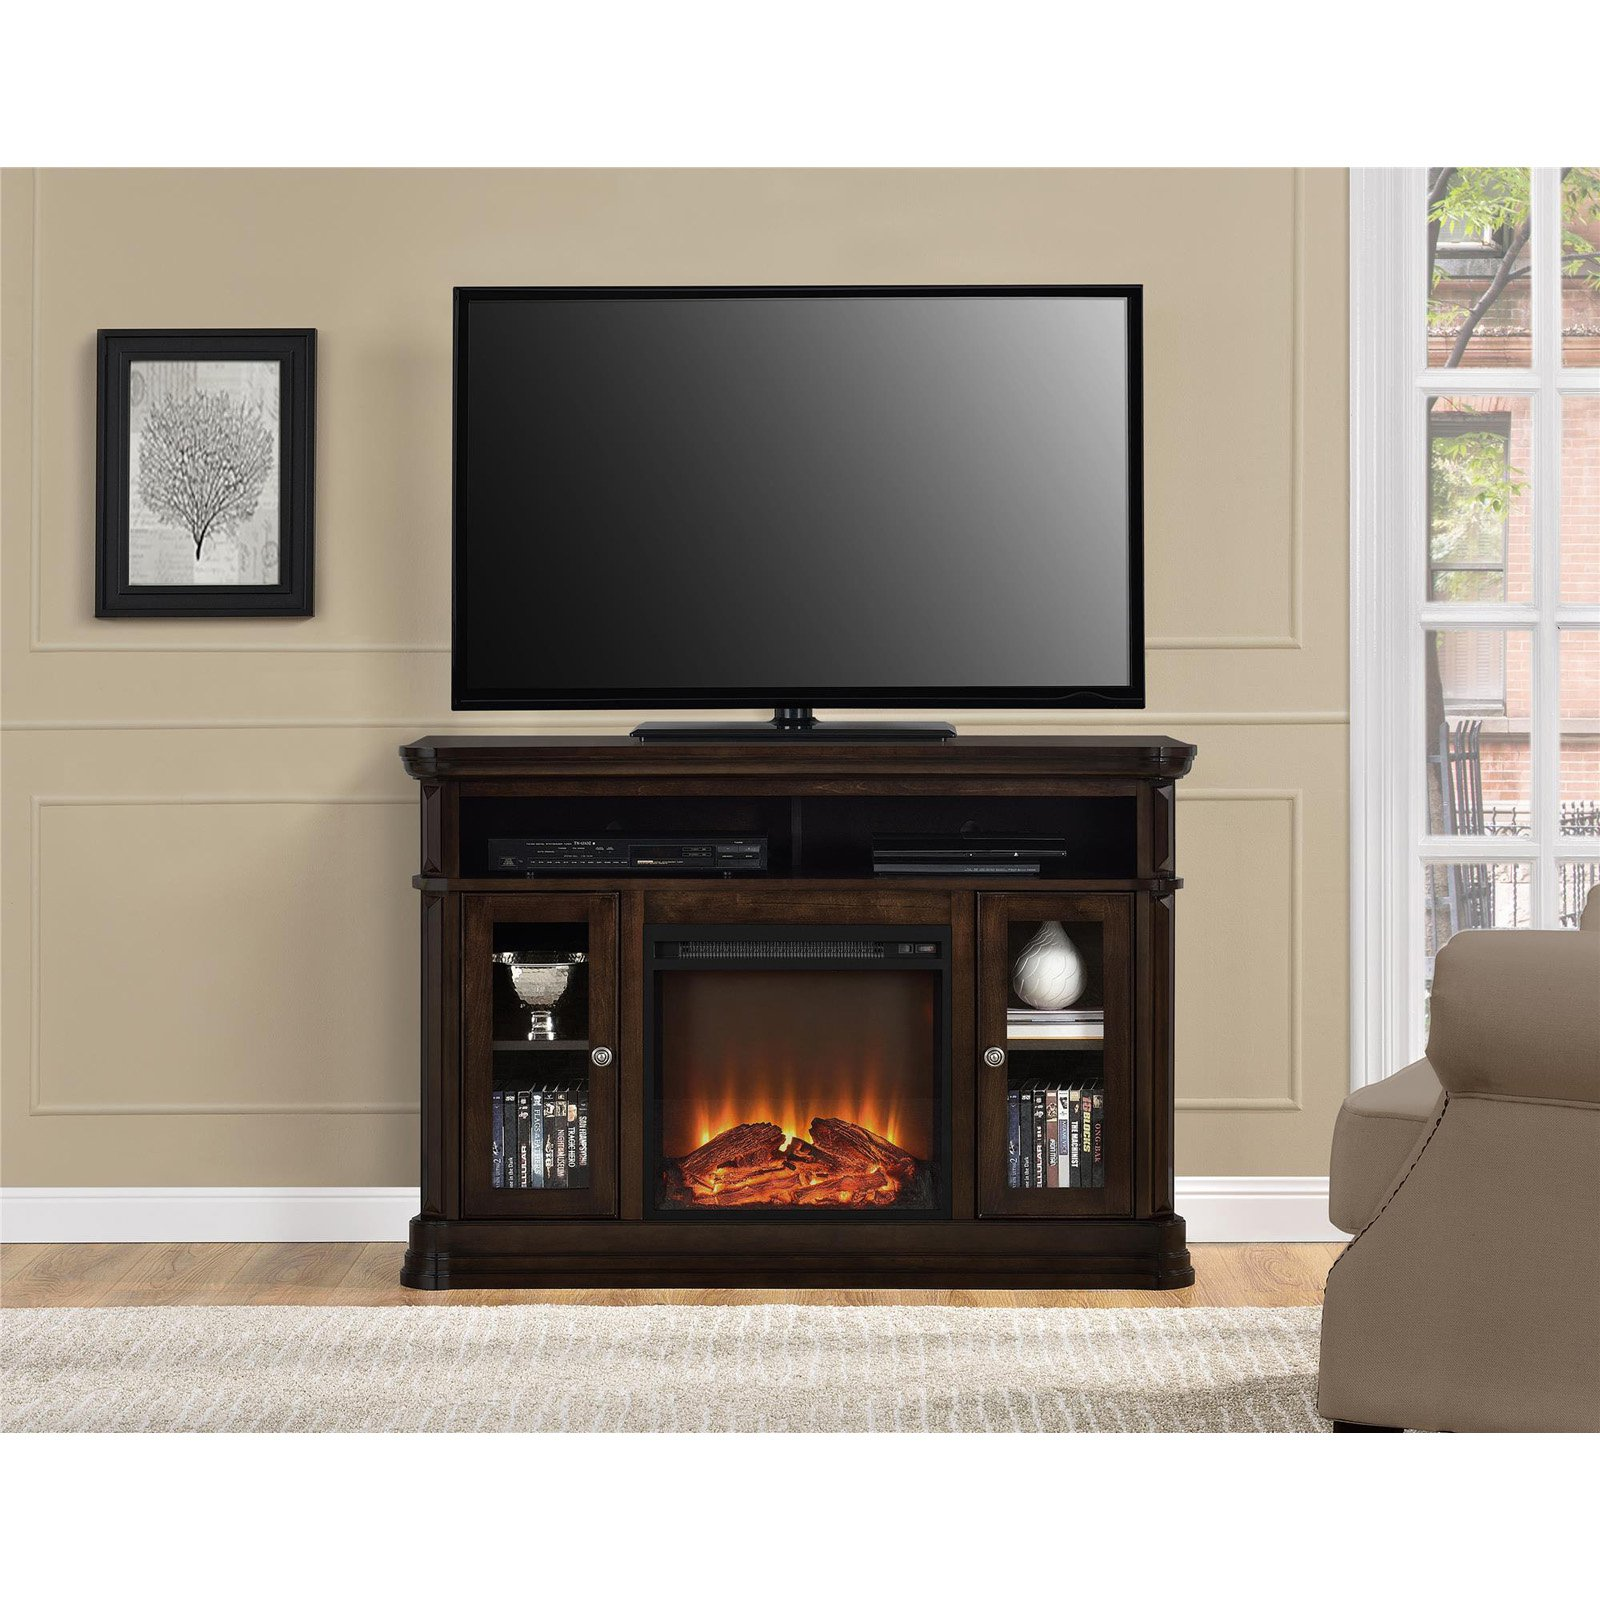 Ameriwood Home Brooklyn Electric Fireplace TV Console for TVs up to 50\ by Ameriwood